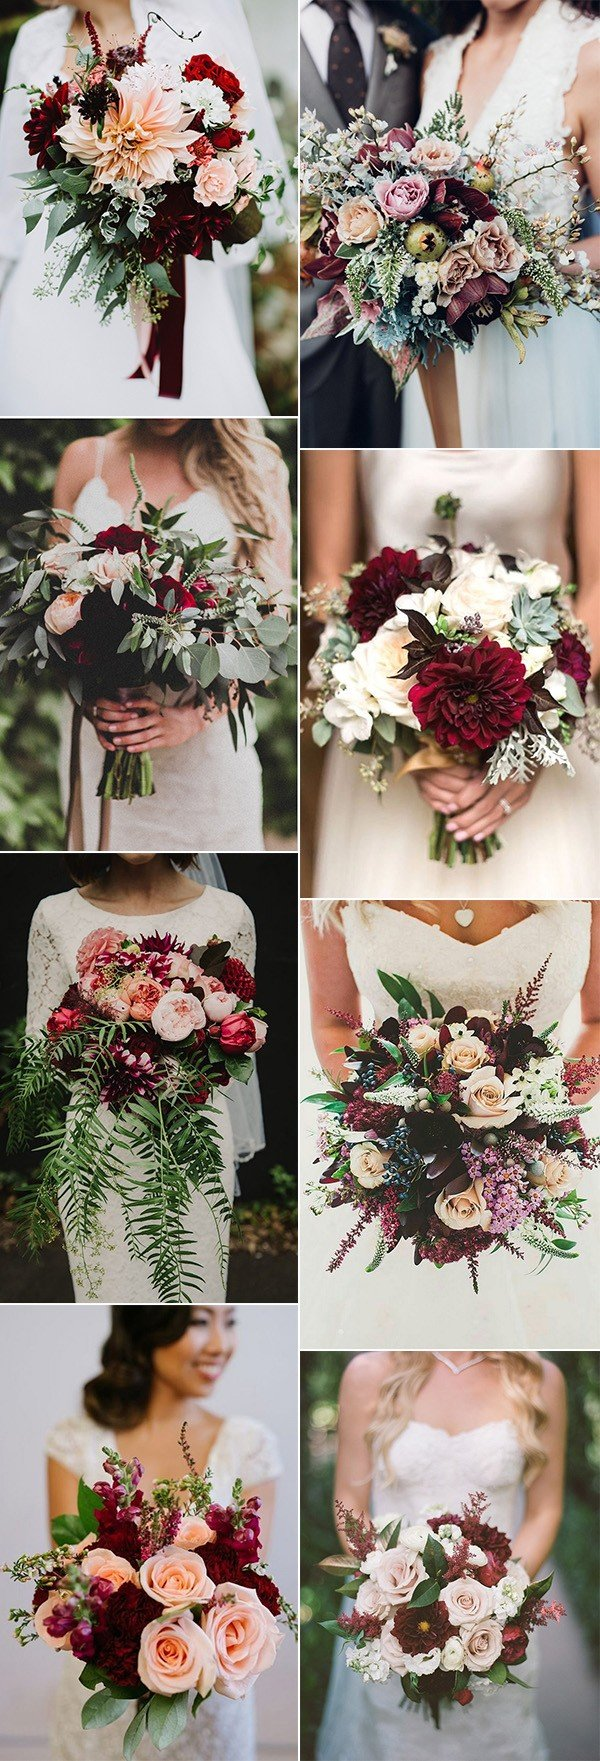 trending burgundy and blush wedding bouquet ideas